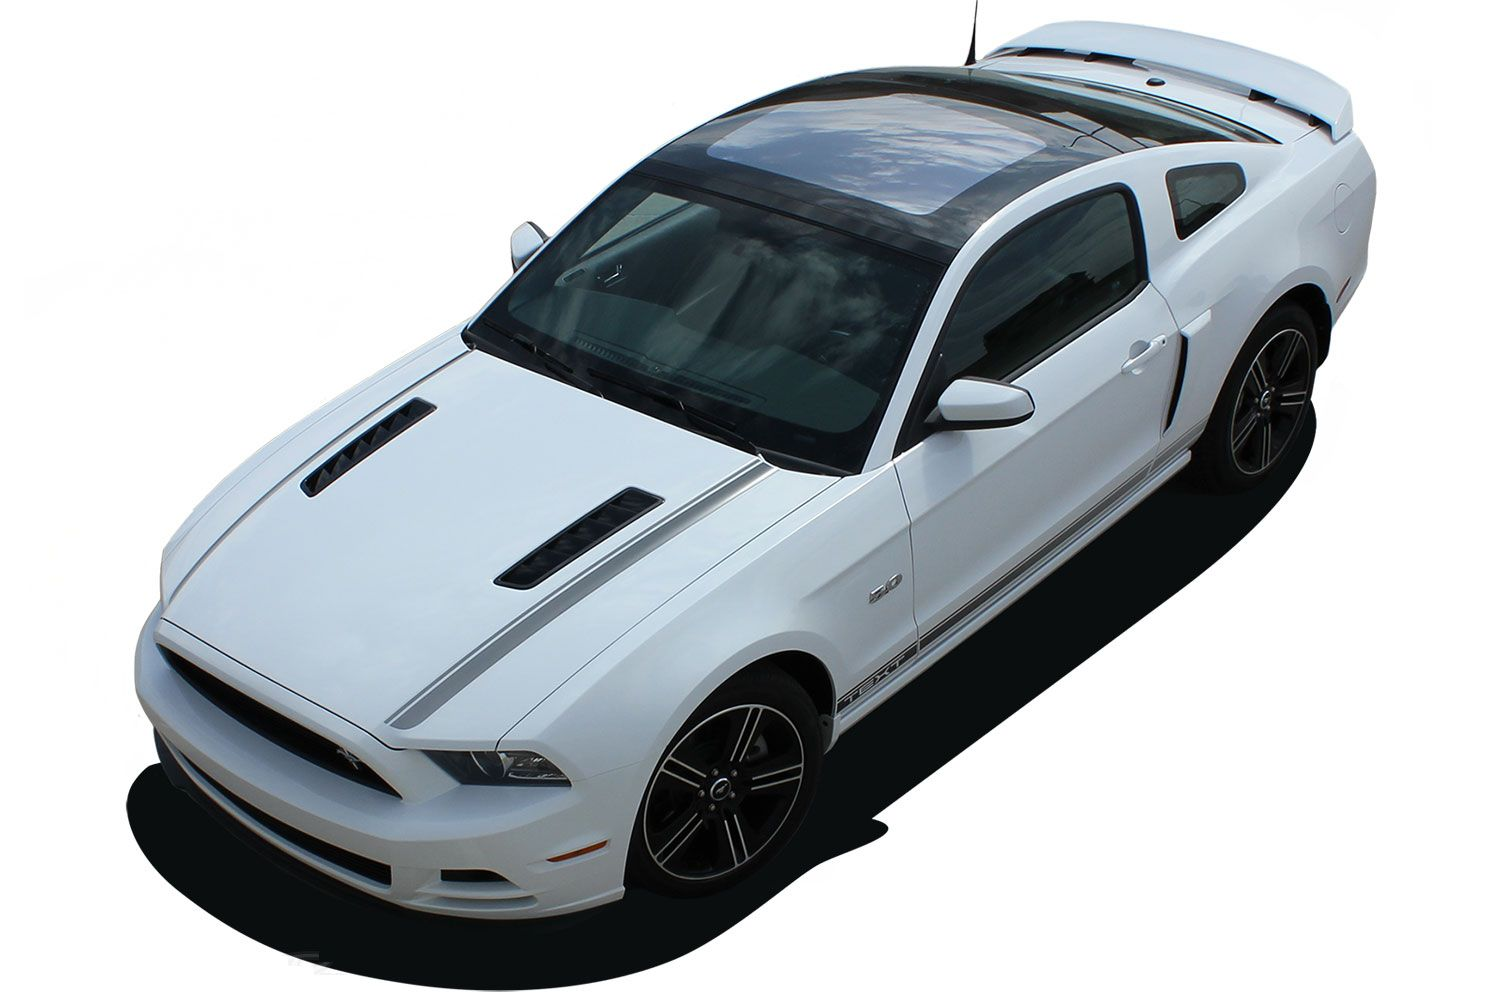 2010 2011 2012 2013 2014 Shelby GT500 SUPER SNAKE MUSTANG ROCKER STRIPES DECALS